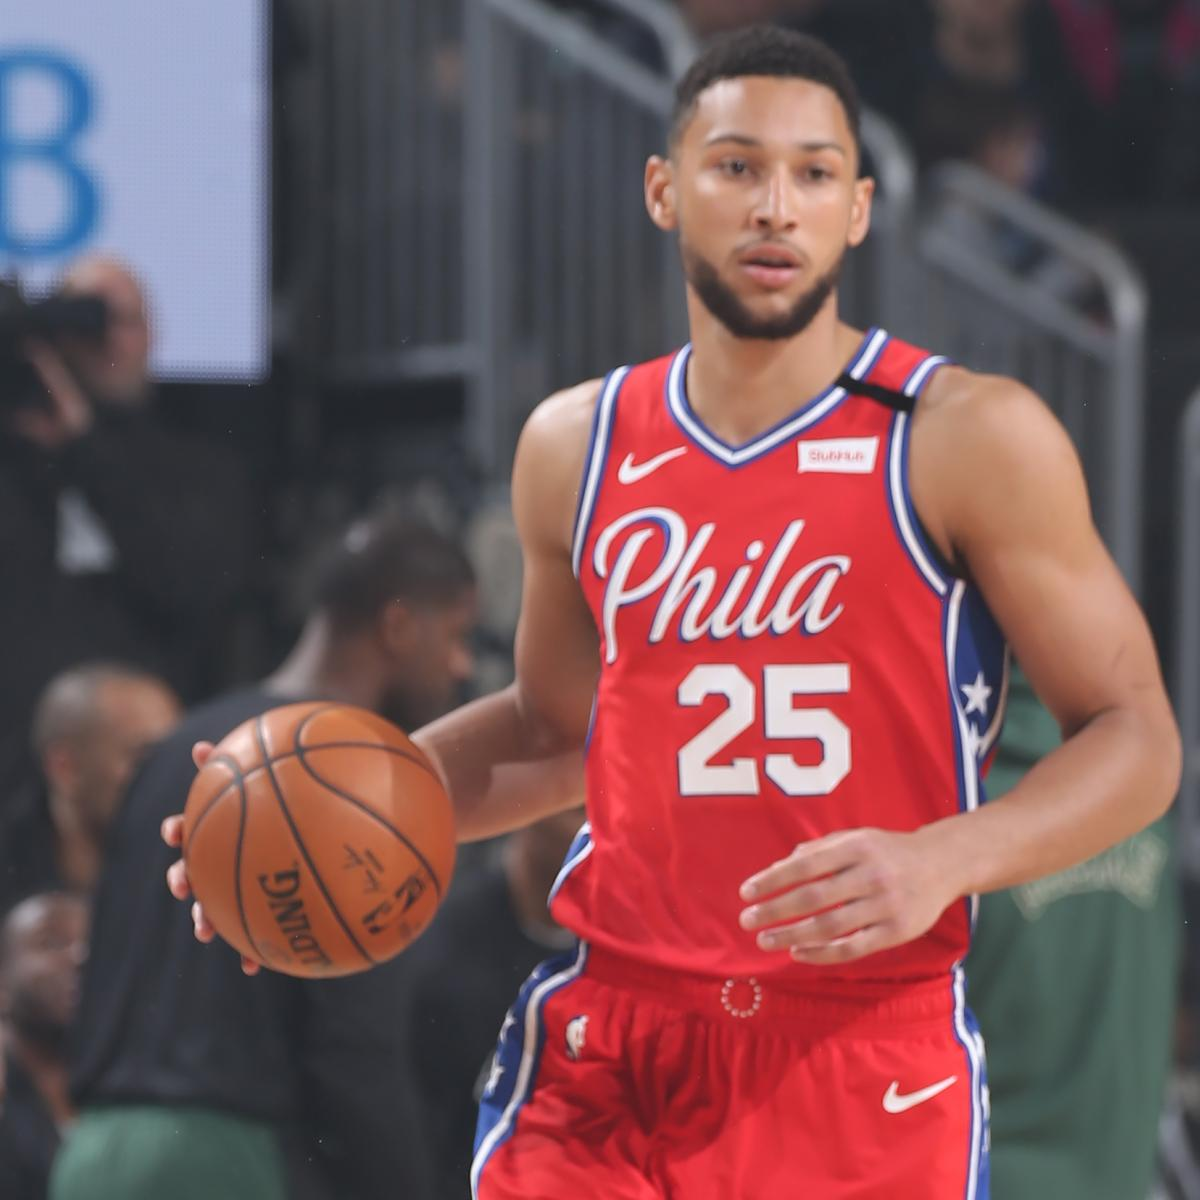 Report: 76ers' Ben Simmons 'Emotional' After X-Rays on Back Injury Amid Concerns